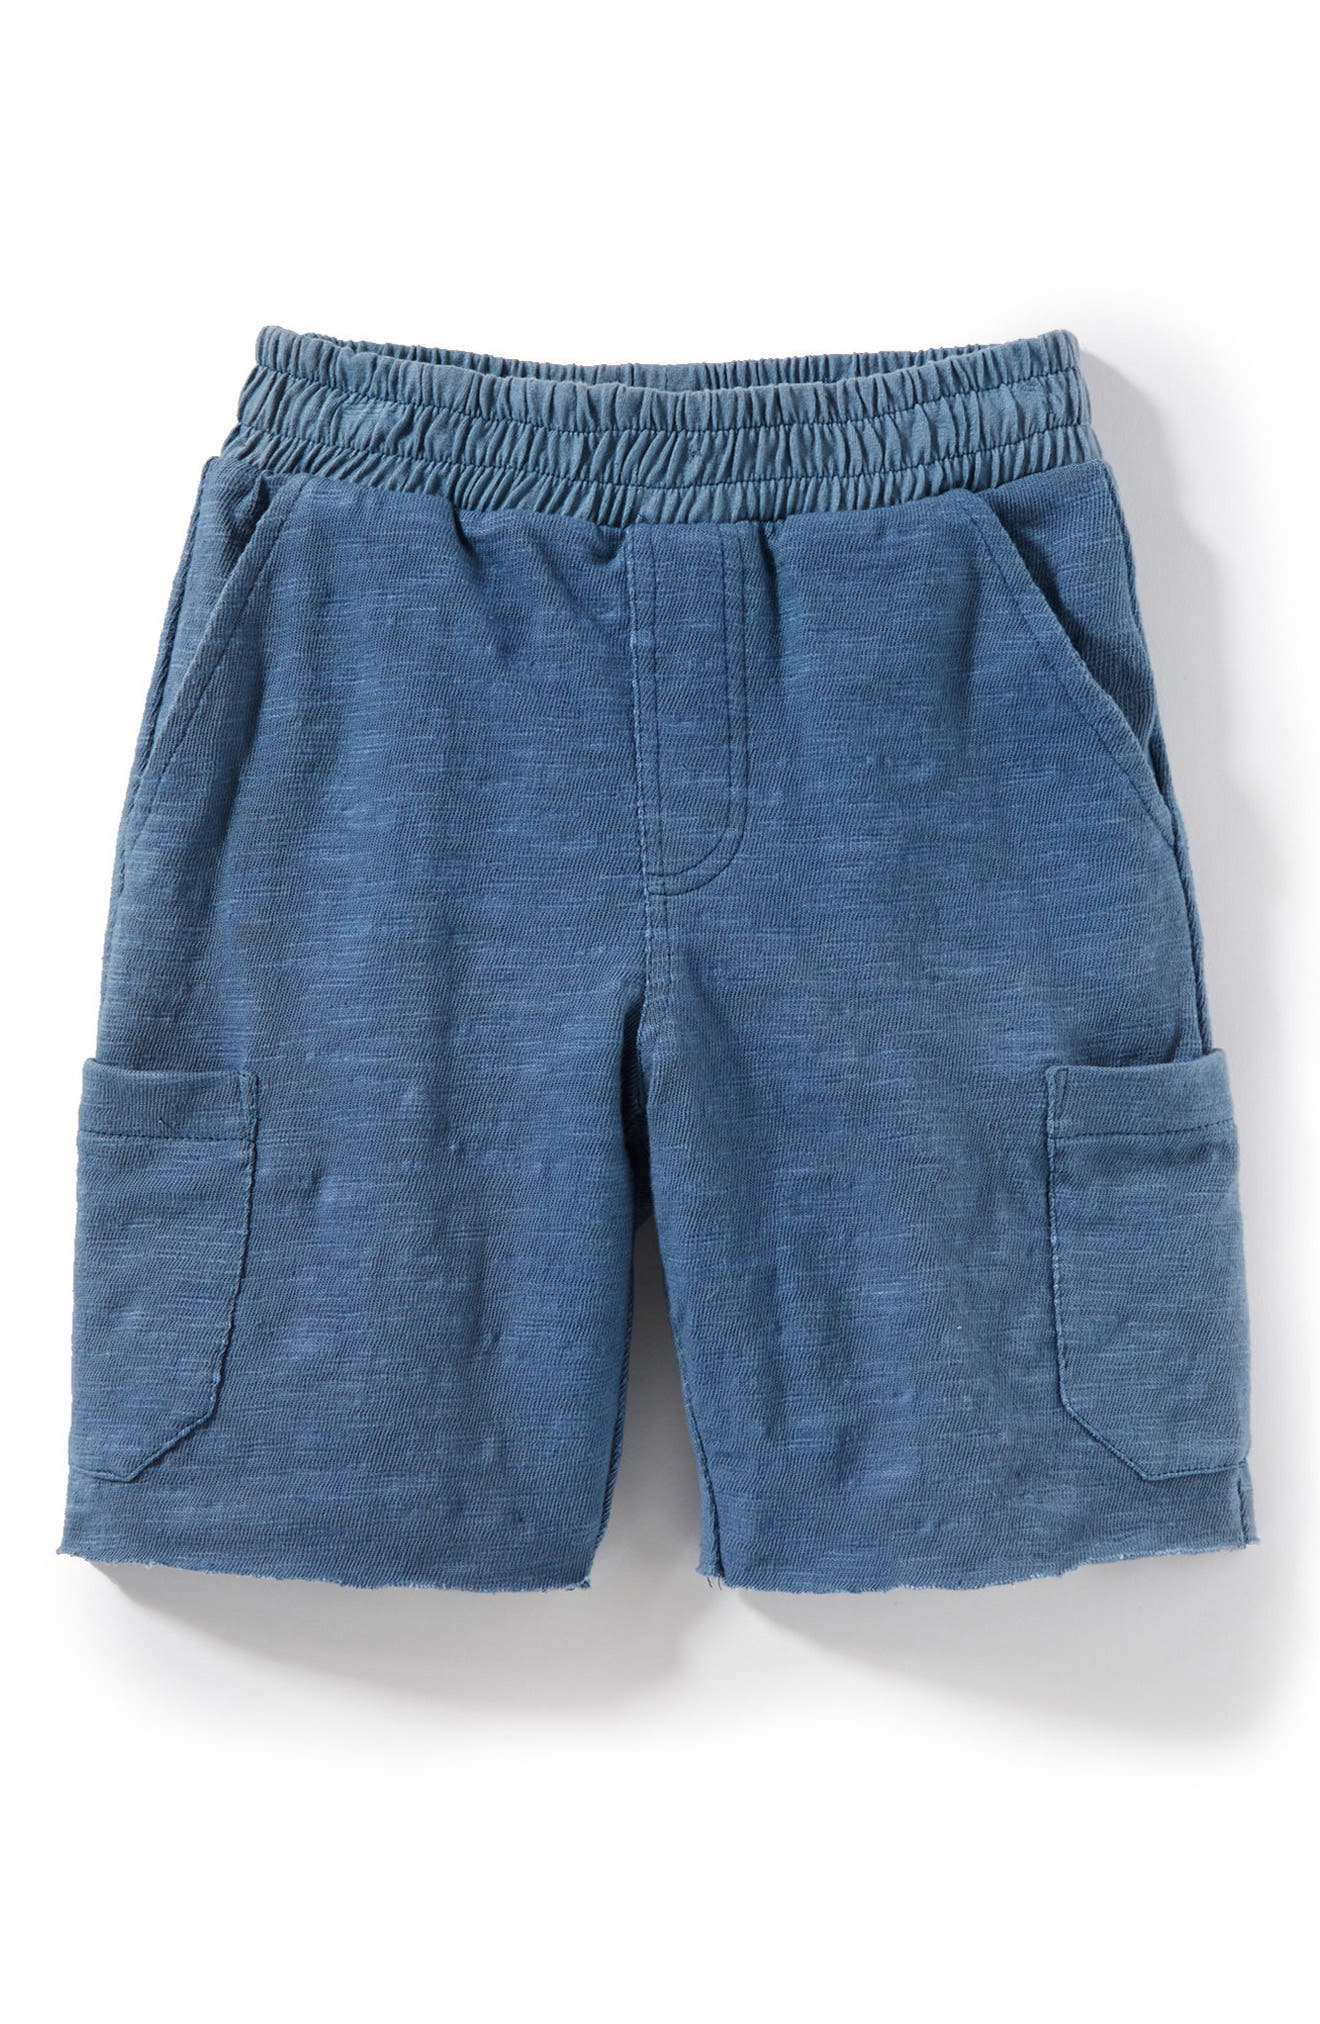 Asher Knit Shorts,                             Main thumbnail 1, color,                             Indigo